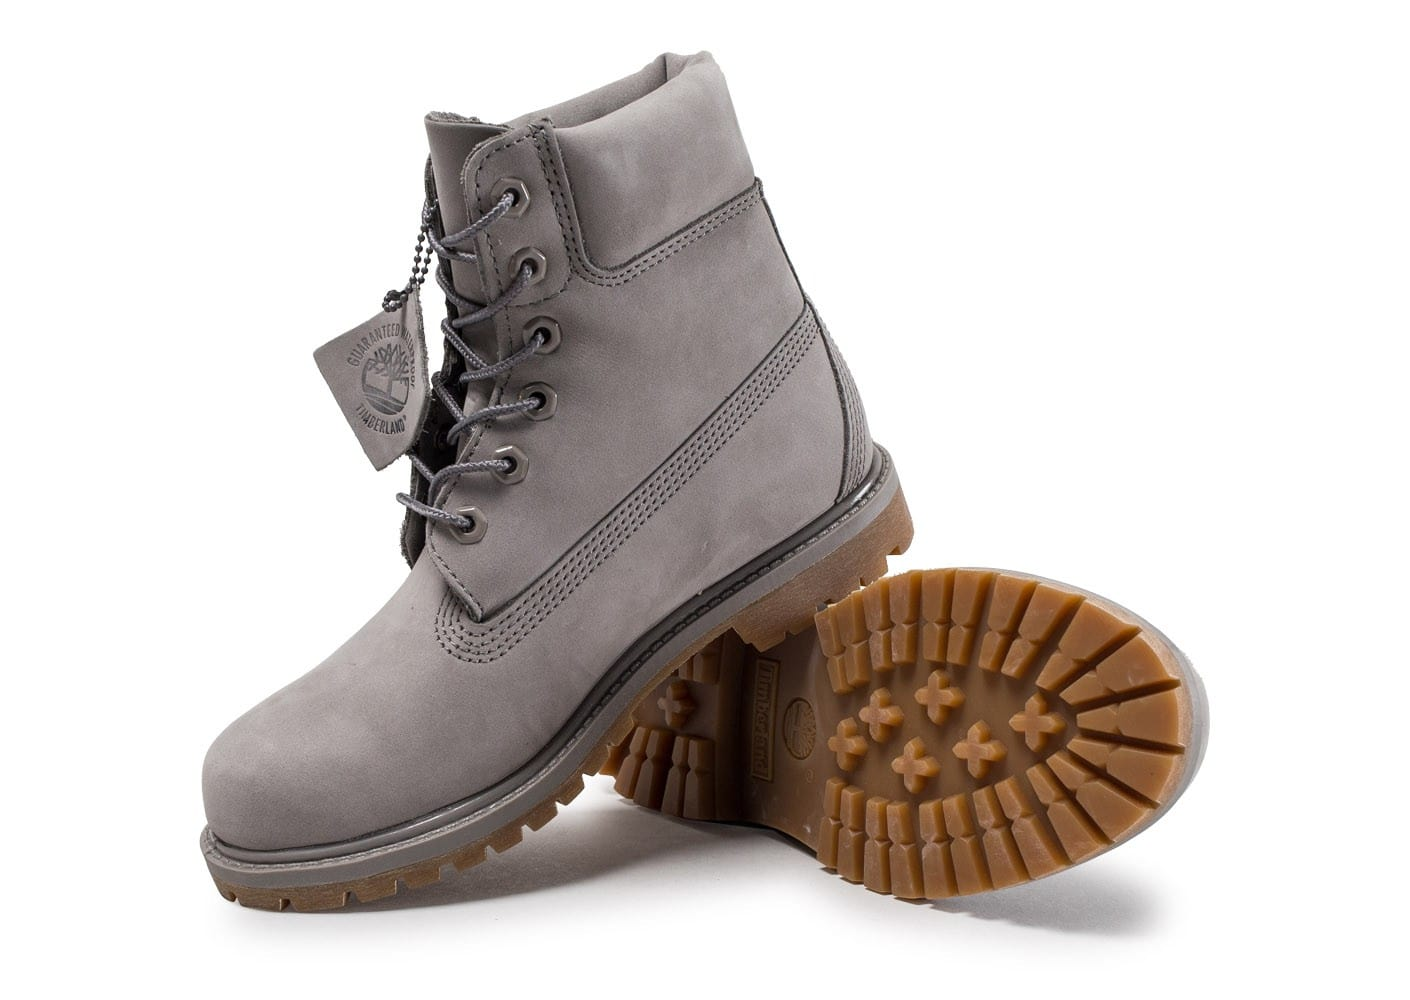 timberland 6 inch premium boots grise chaussures baskets femme chausport. Black Bedroom Furniture Sets. Home Design Ideas